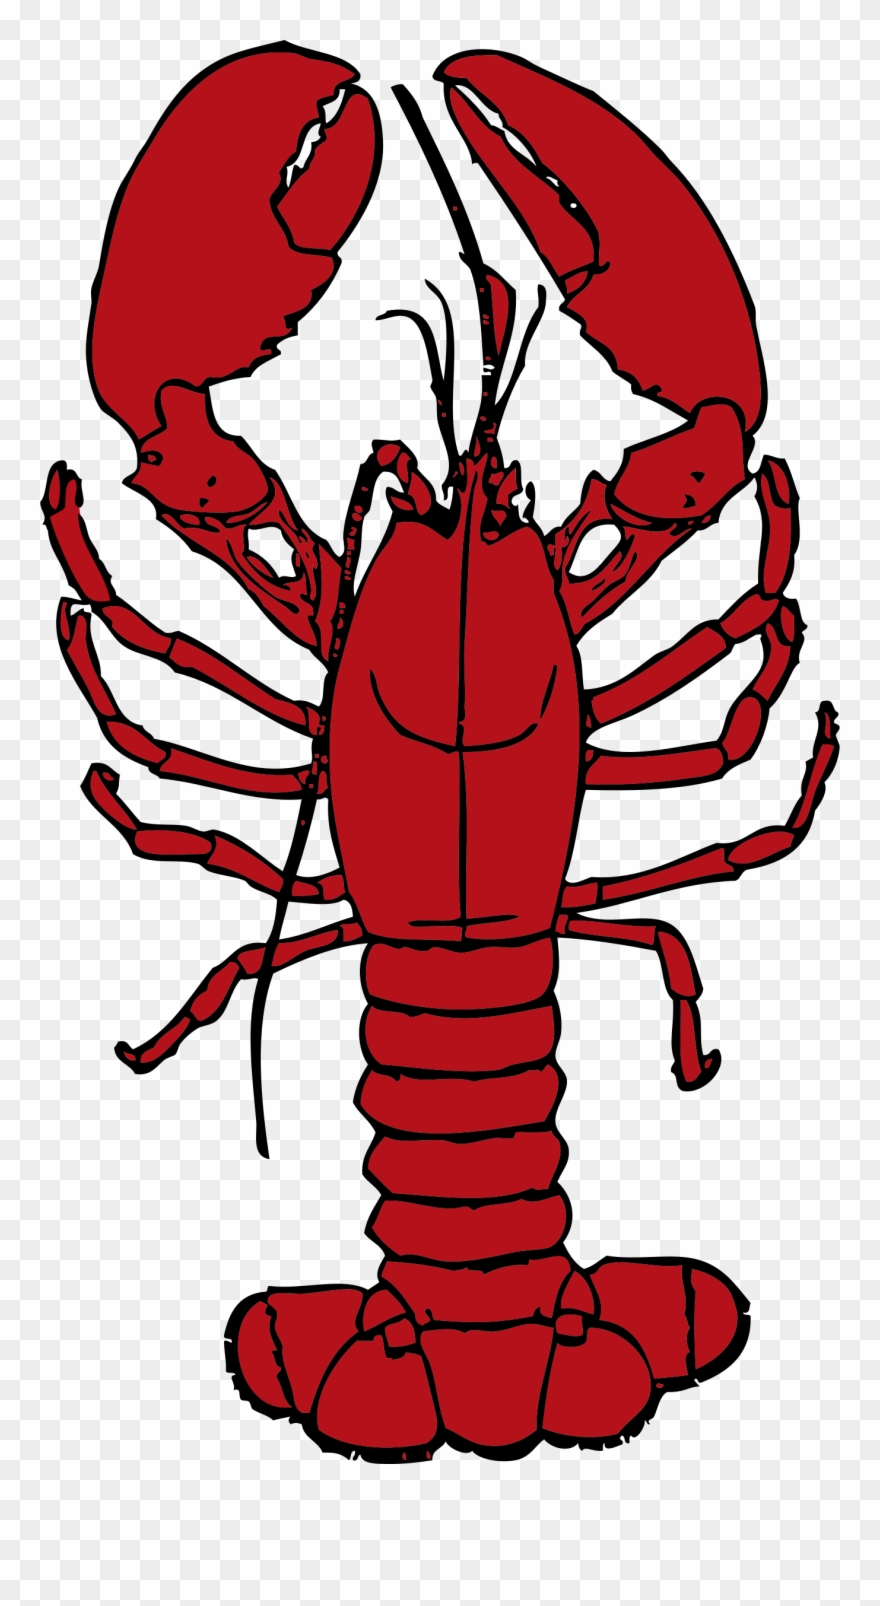 Crawfish clipart transparent background. Clip library boil lobster